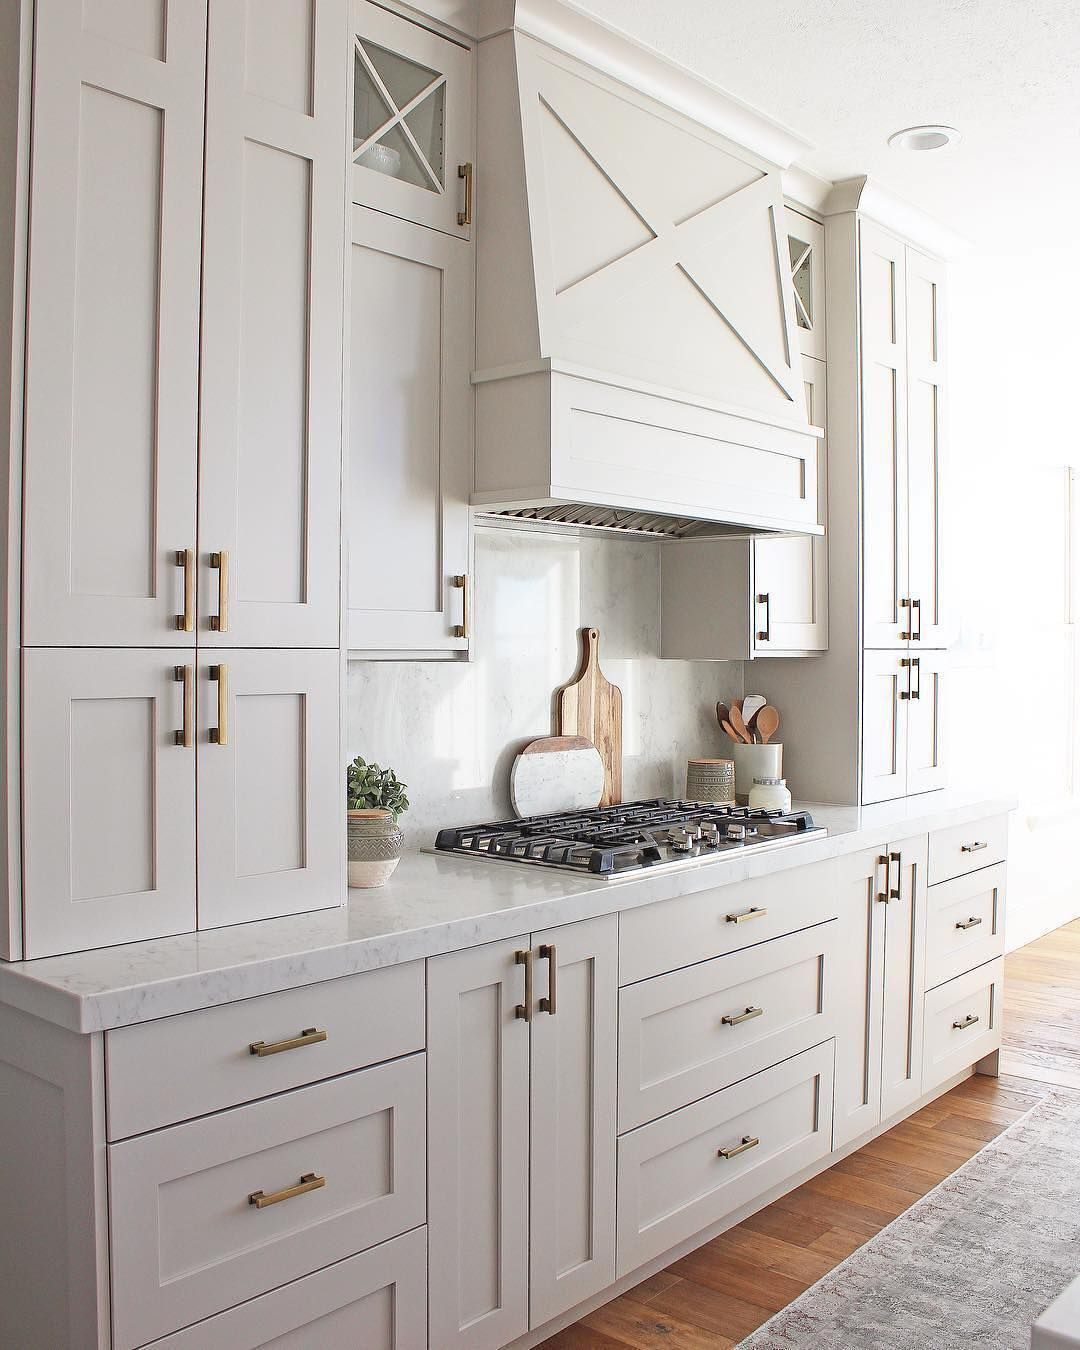 Great Kitchens Every Day On Instagram Love This Remodel Such A Great Design Nicely Done Sita Diy Kitchen Renovation Kitchen Renovation Kitchen Design